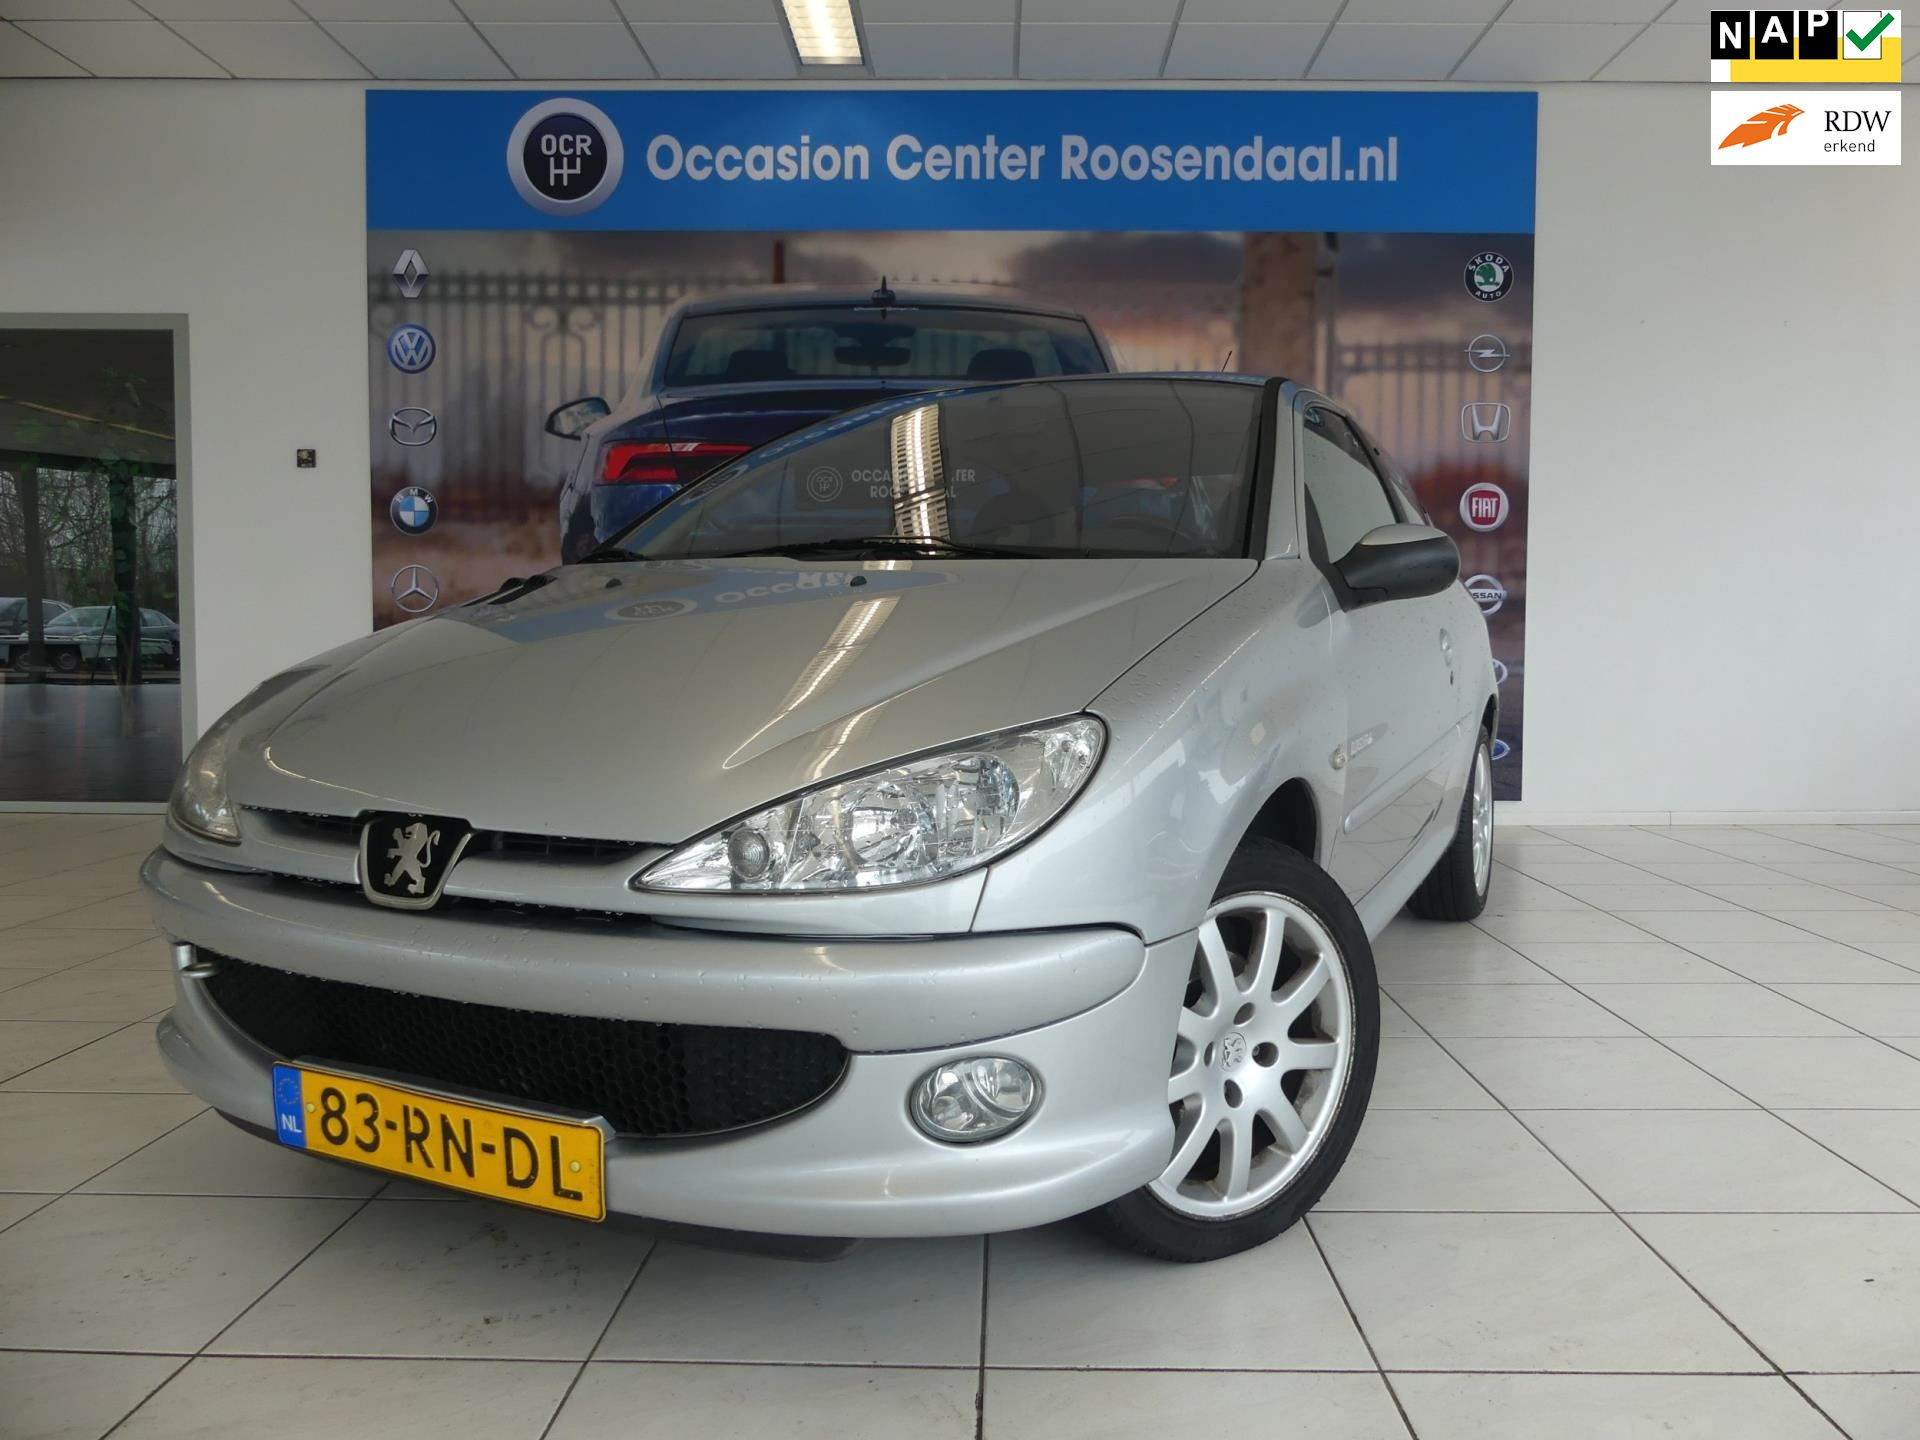 Peugeot 206 occasion - Occasion Center Roosendaal